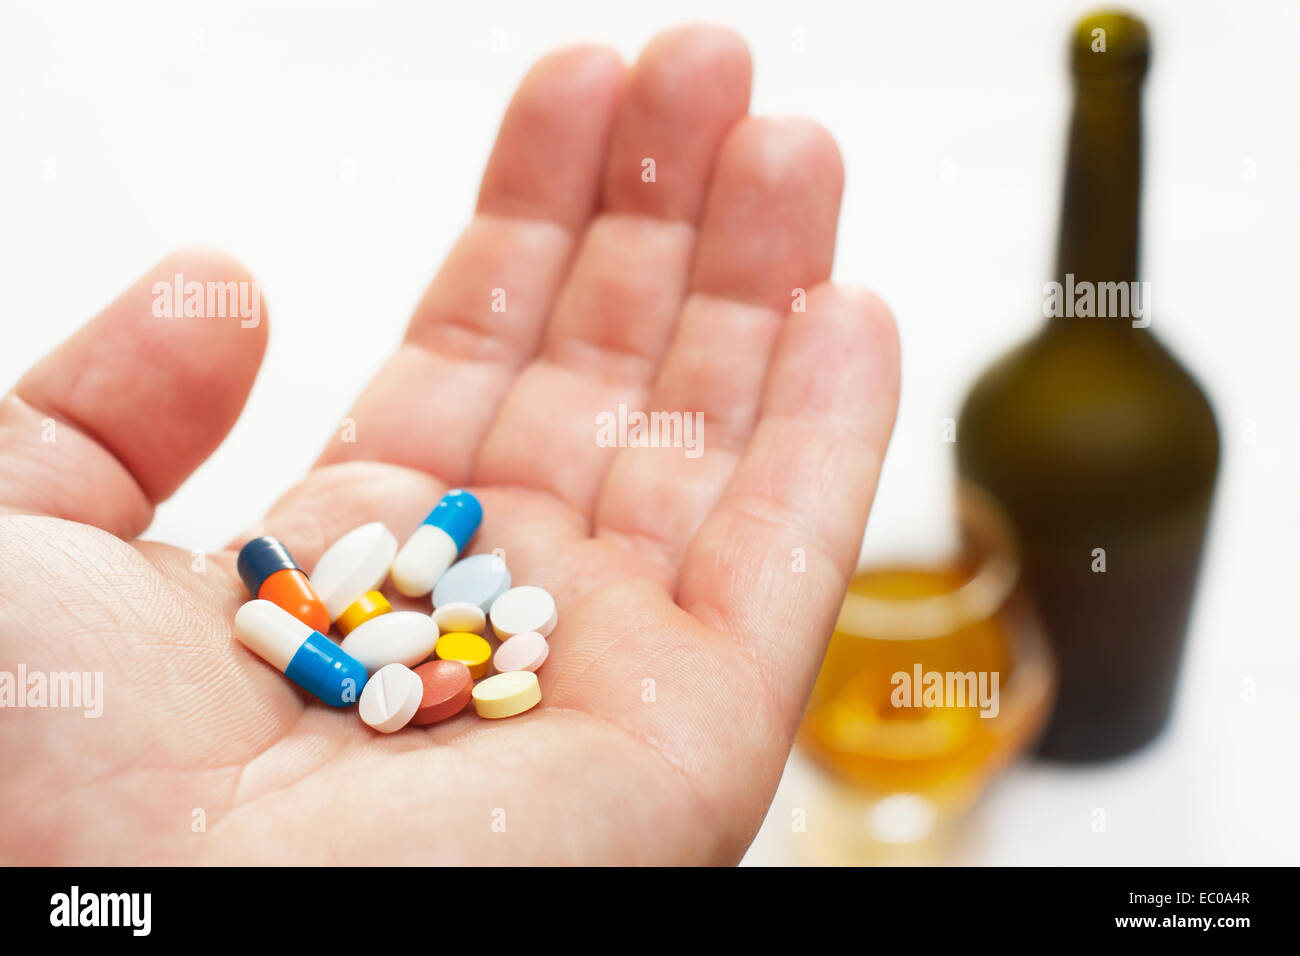 Man's hand hold many medicine. Bottle and glass with alcohol in the background - Stock Image